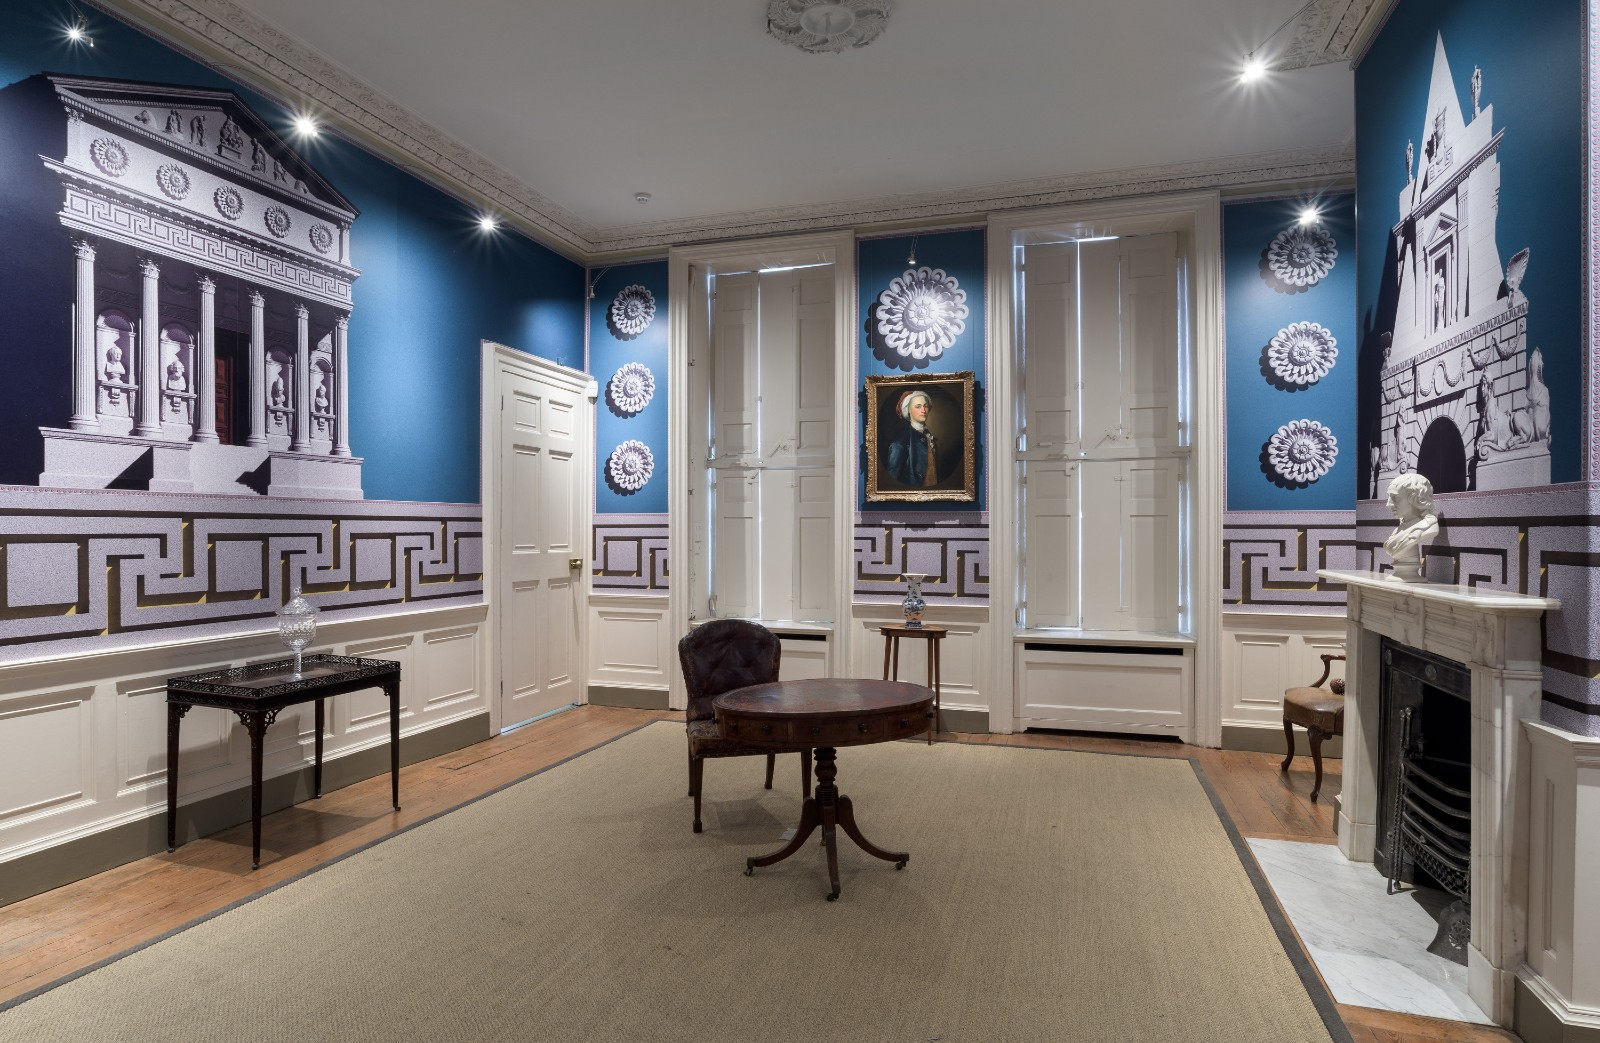 The interior of a period house with wallpaper decorated with outsized classical buildings and architectural features against an electric blue background.